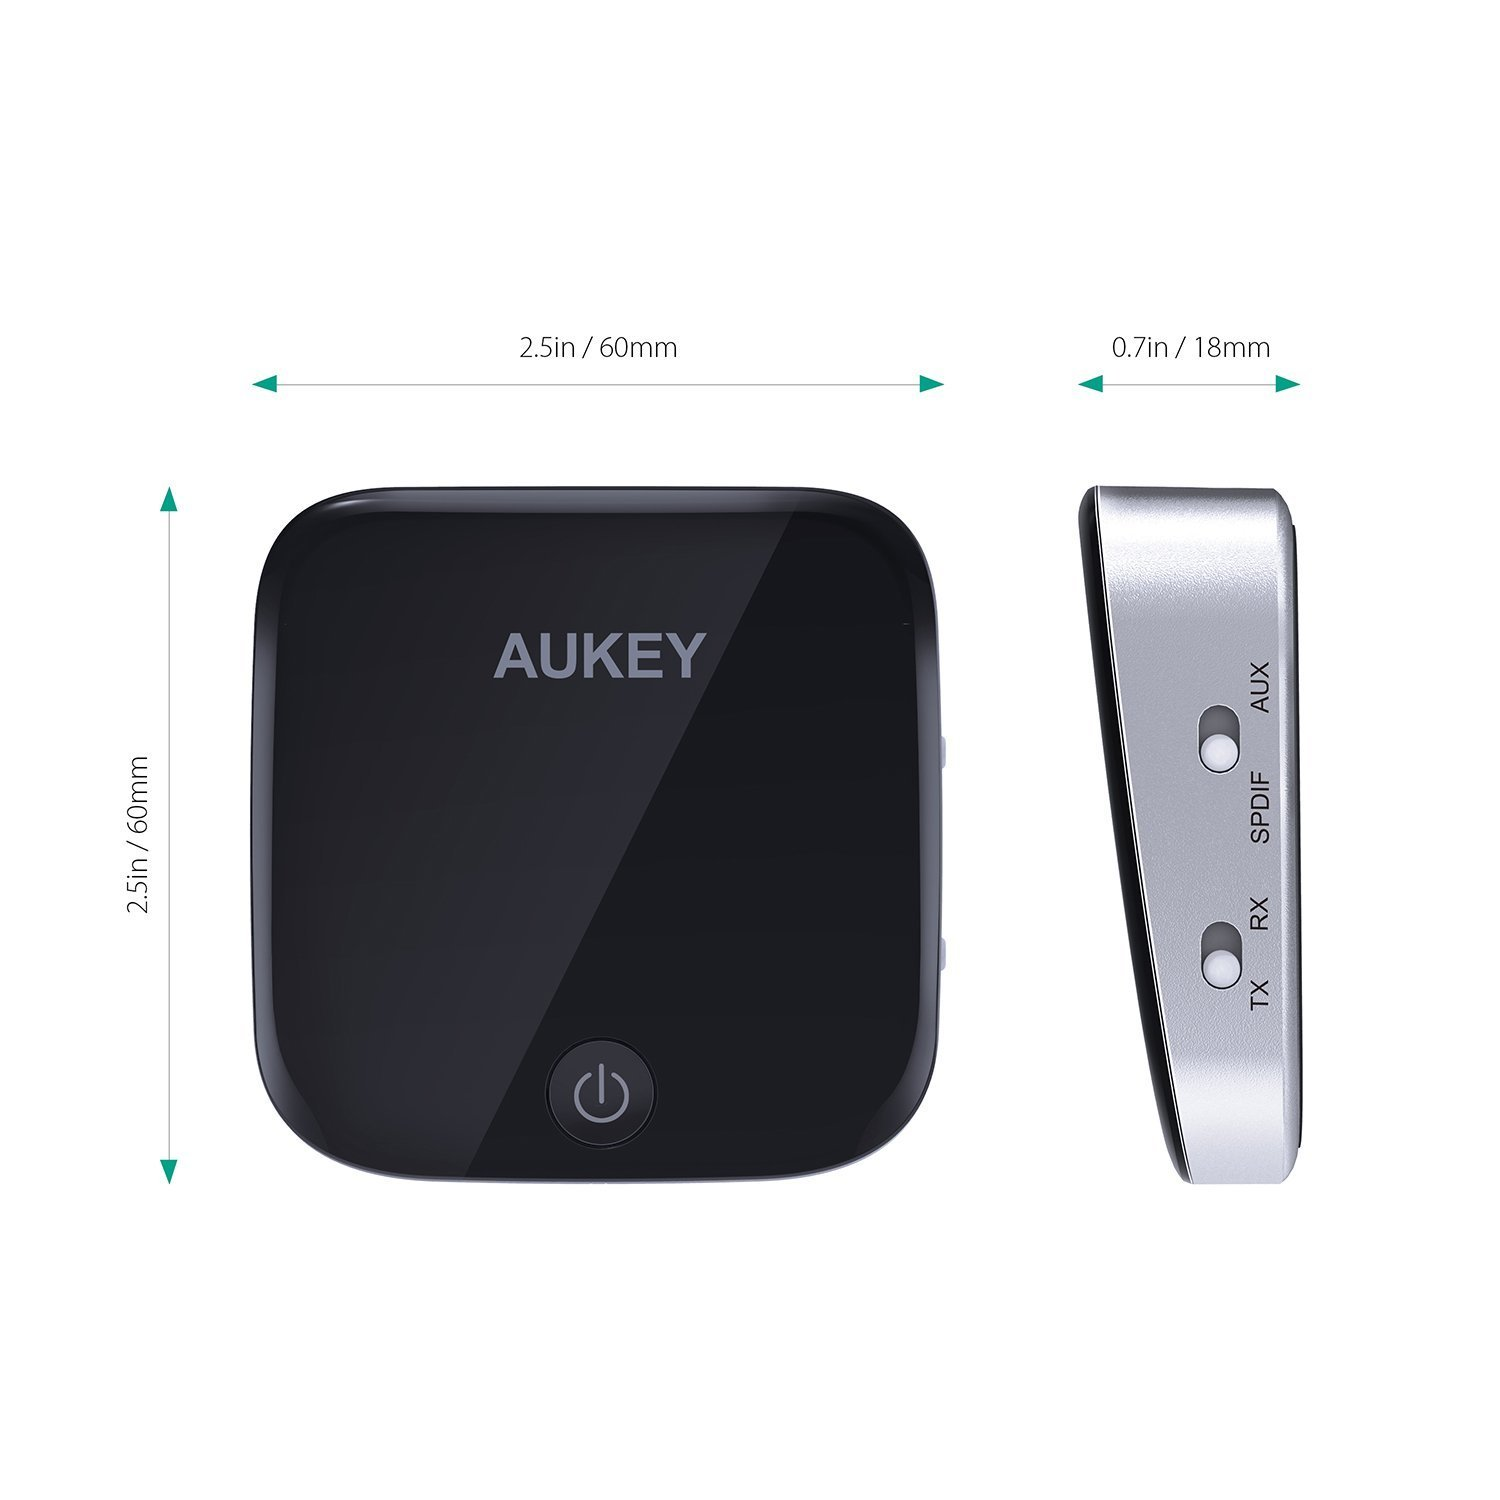 AUKEY Bluetooth Transmitter Empfänger 2 in 1 mit: Amazon.de: Elektronik